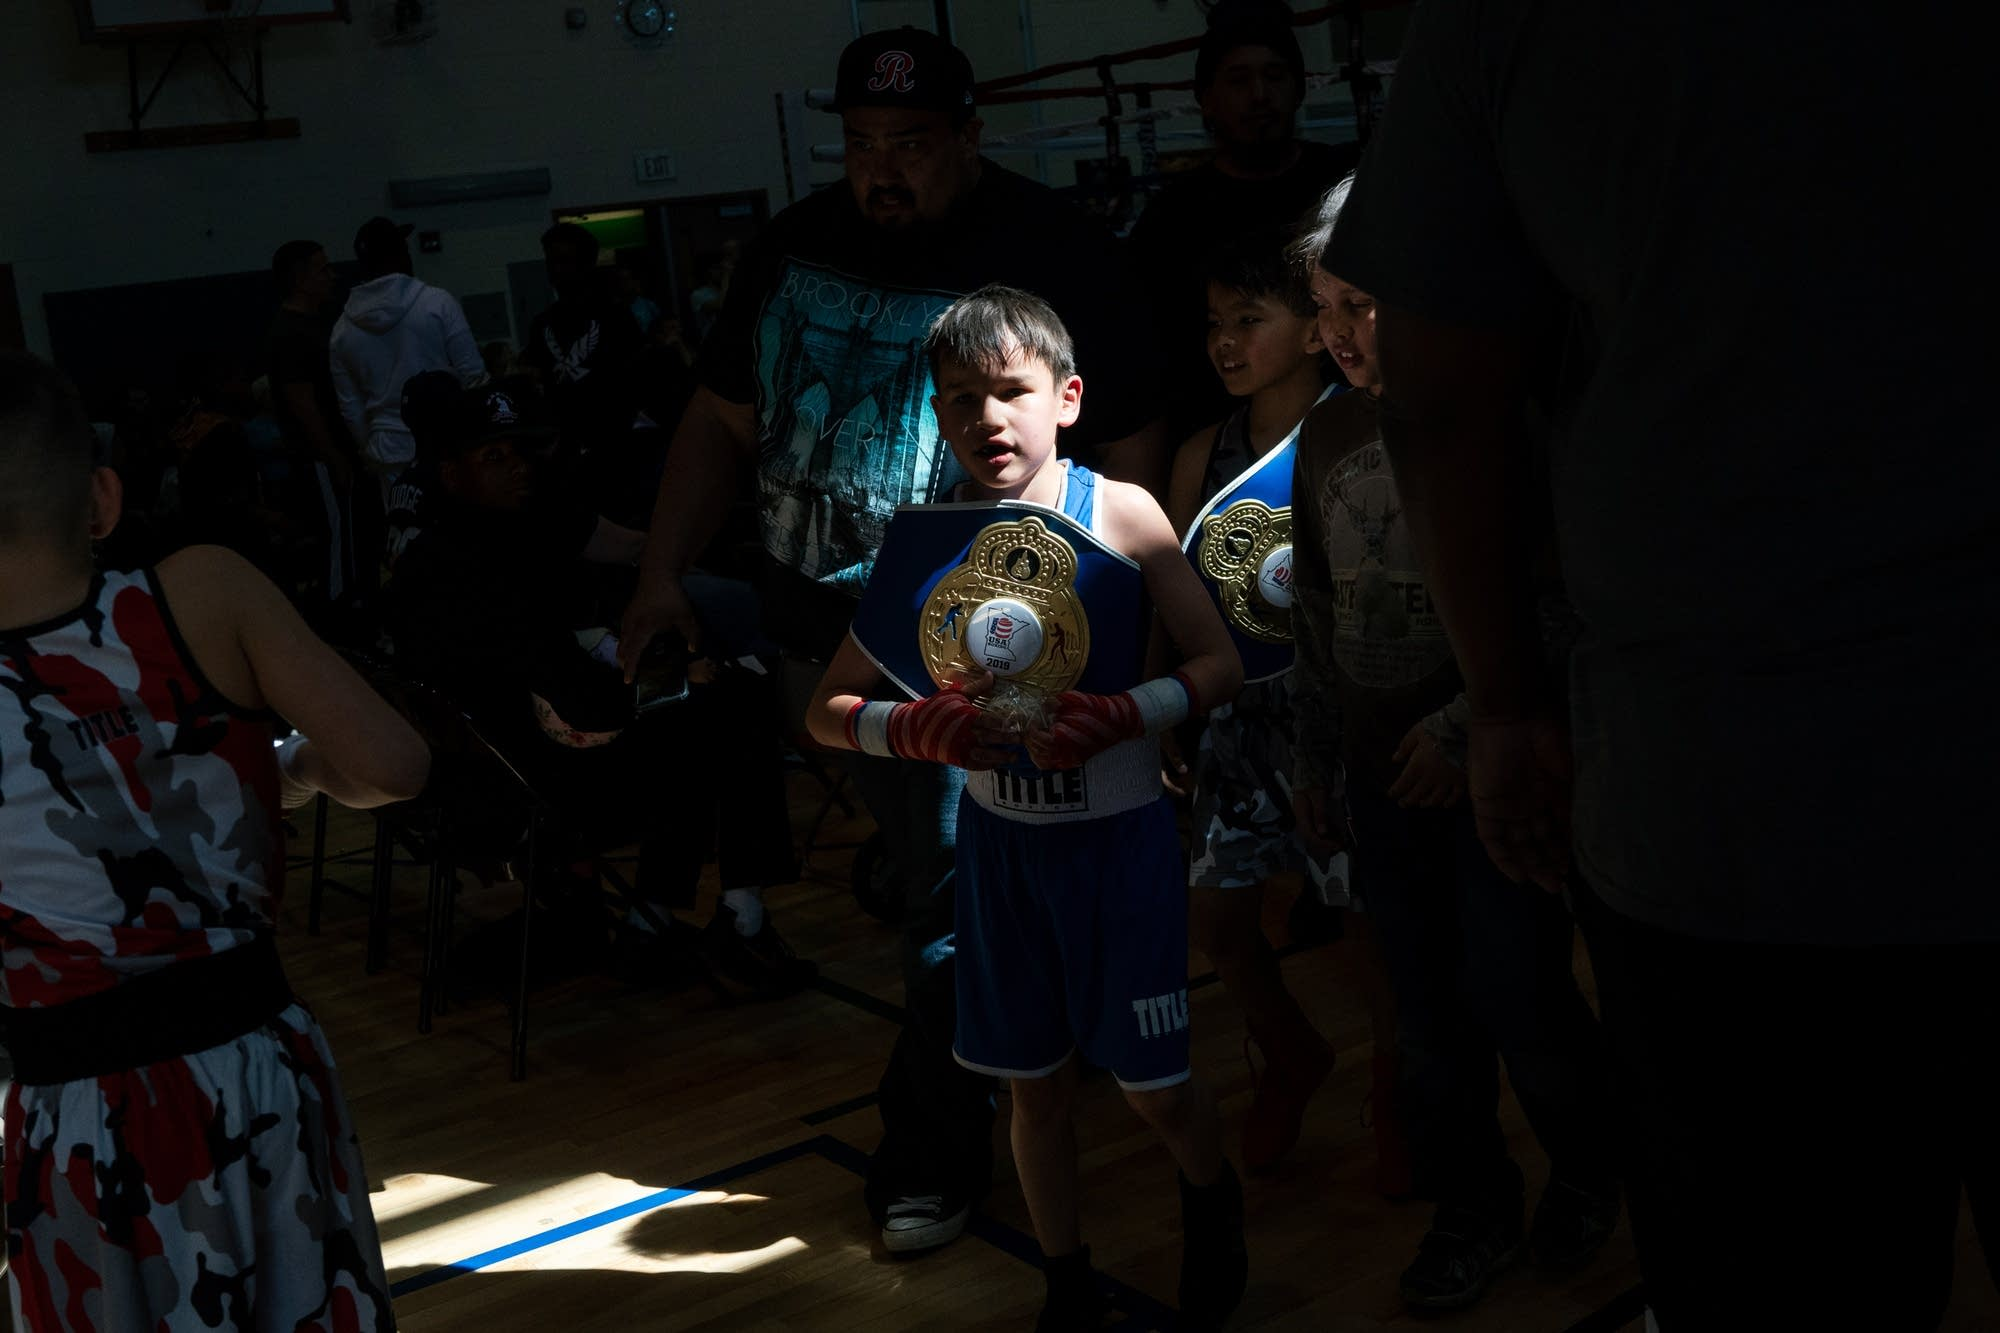 Nine-year-old Stanley Torres walks out of the gym with his belt.